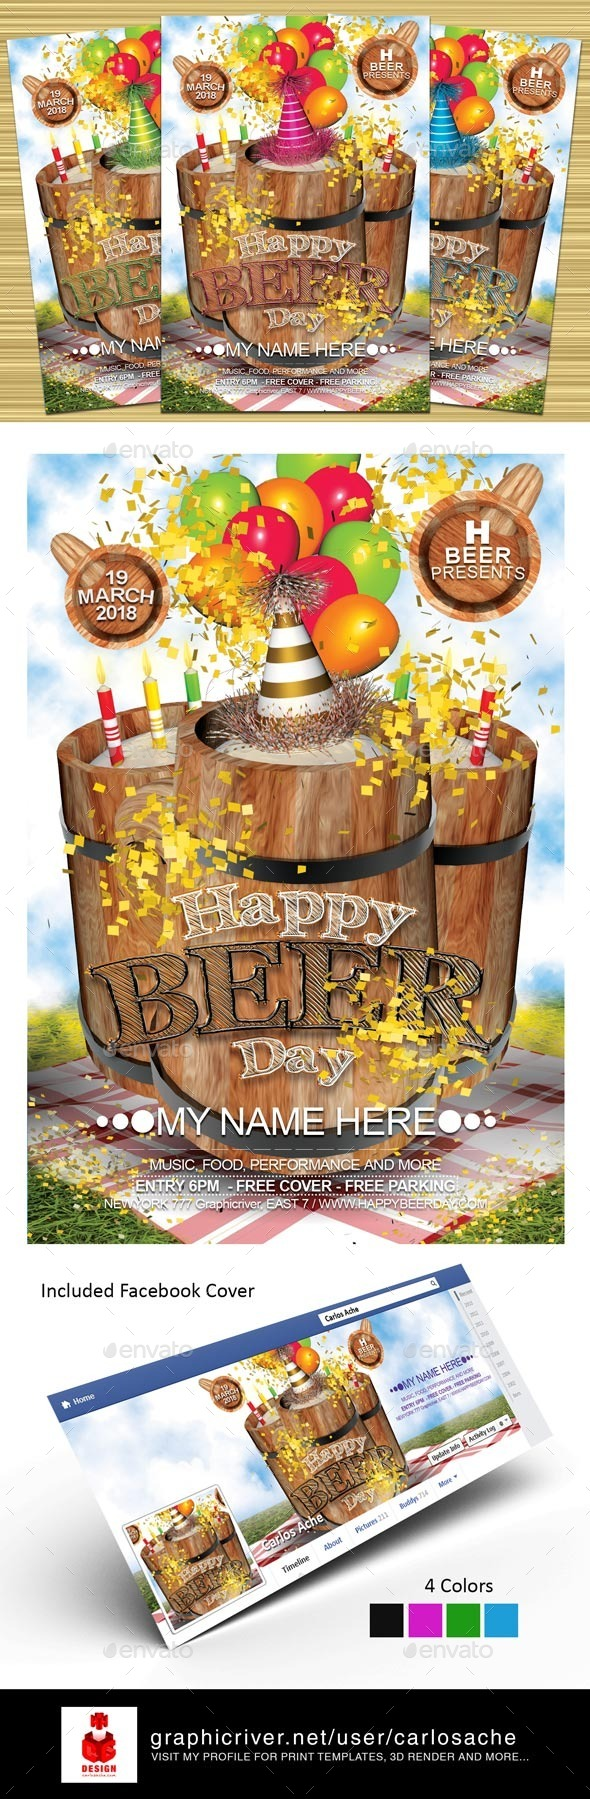 GraphicRiver Happy Beer Day Flyer Template 10410971